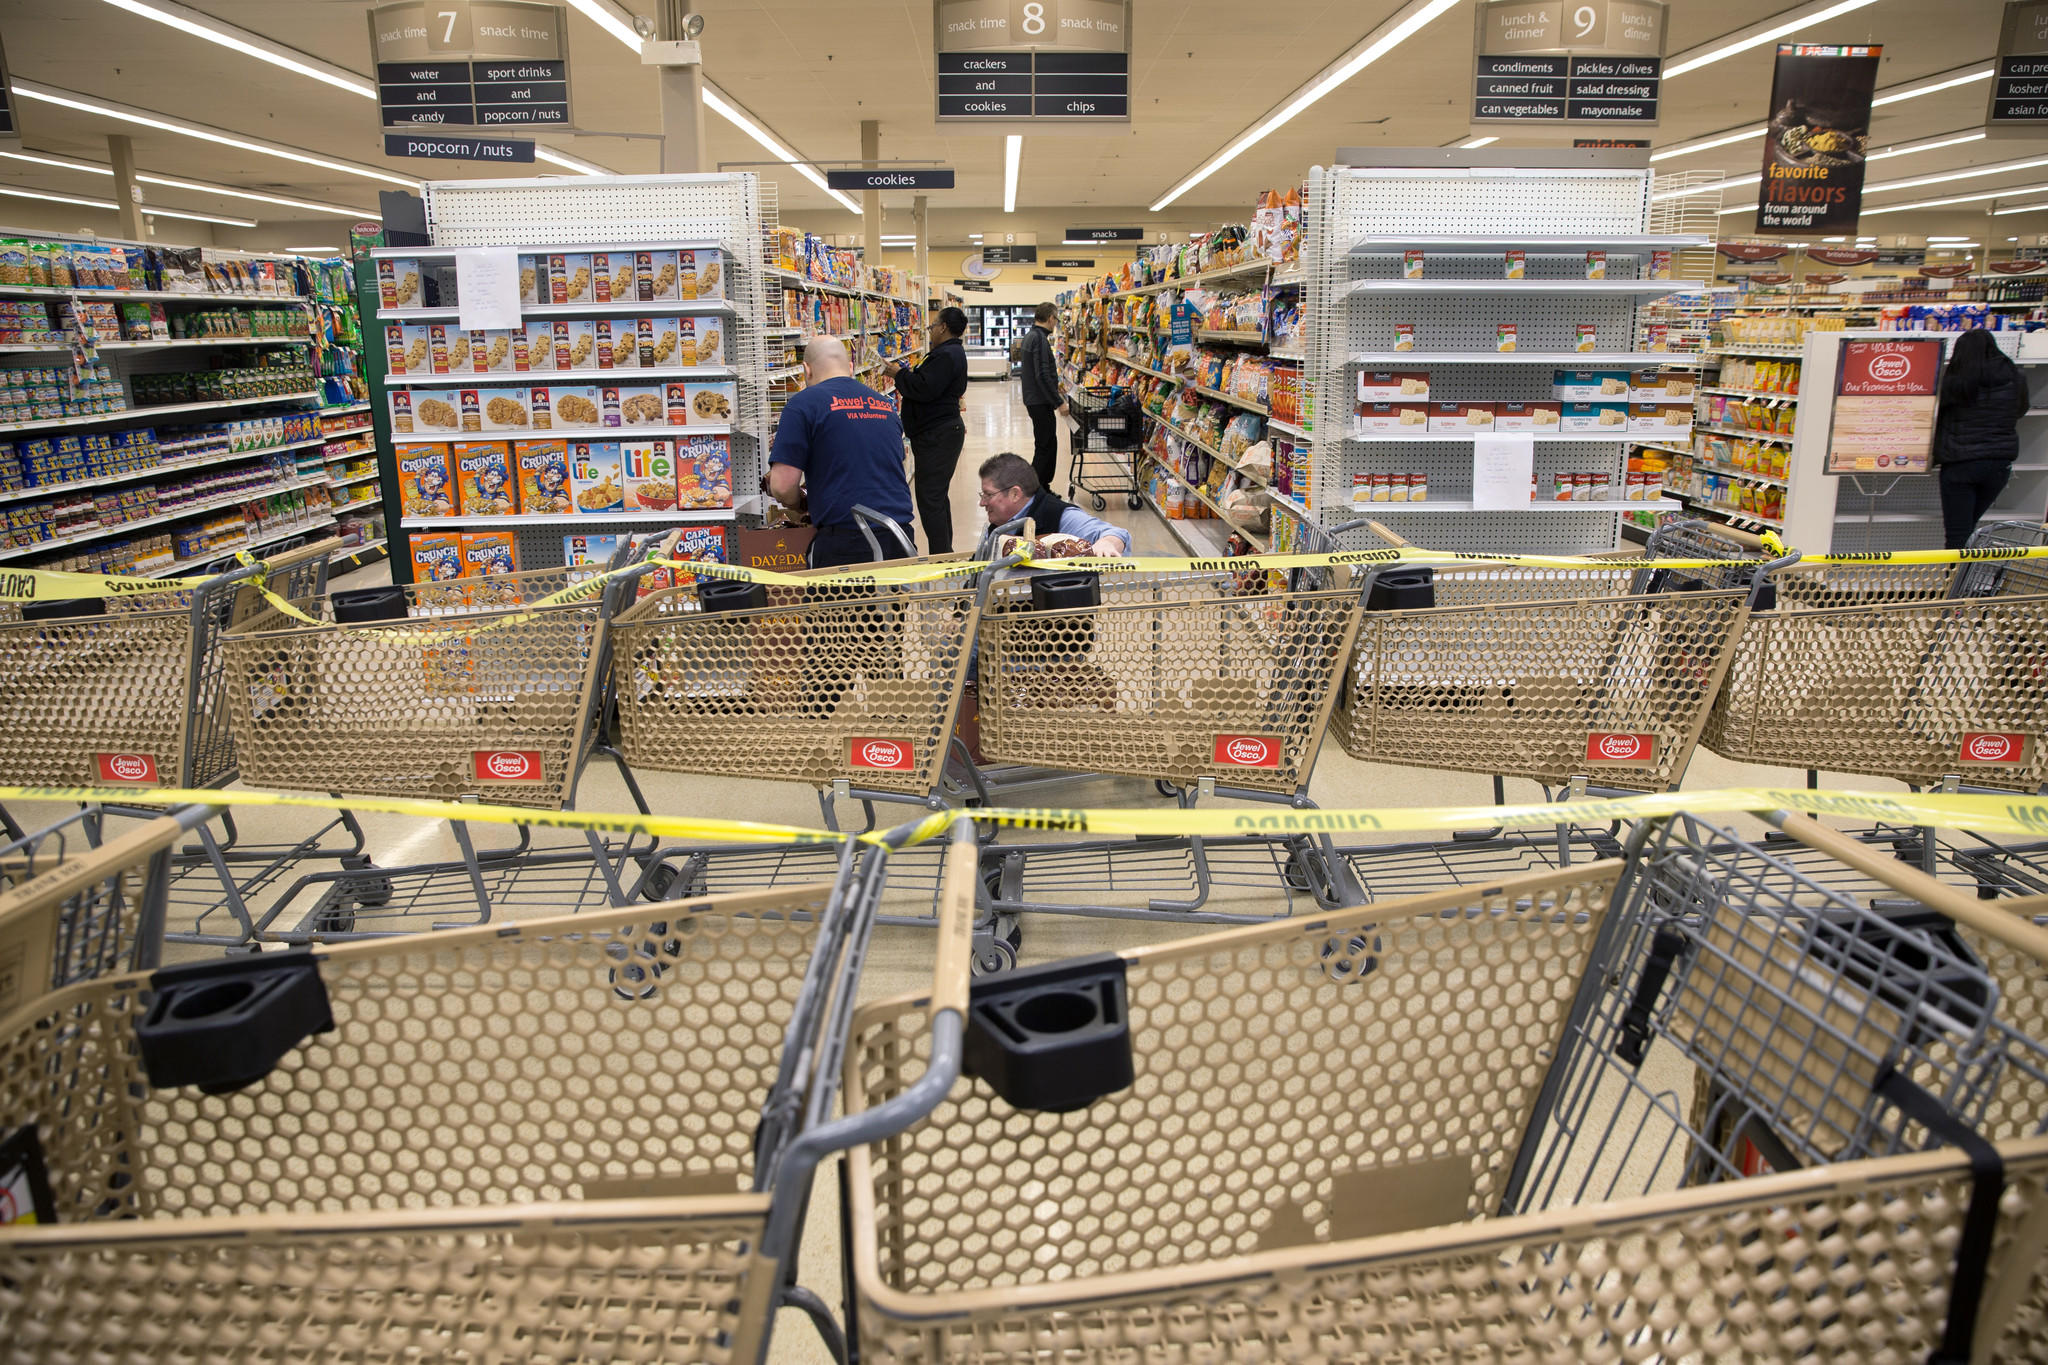 Caution tape and shopping carts block off areas during the transformation of a Dominick's grocery store into a new Jewel Osco store at 1340 S. Canal in Chicago, Tuesday, Jan. 14, 2014. The store will reopen on Thursday. (Alex Garcia/Chicago Tribune) B583458899Z.1 .OUTSIDE TRIBUNE CO.- NO MAGS, NO SALES, NO INTERNET, NO TV, CHICAGO OUT, NO DIGITAL MANIPULATION...